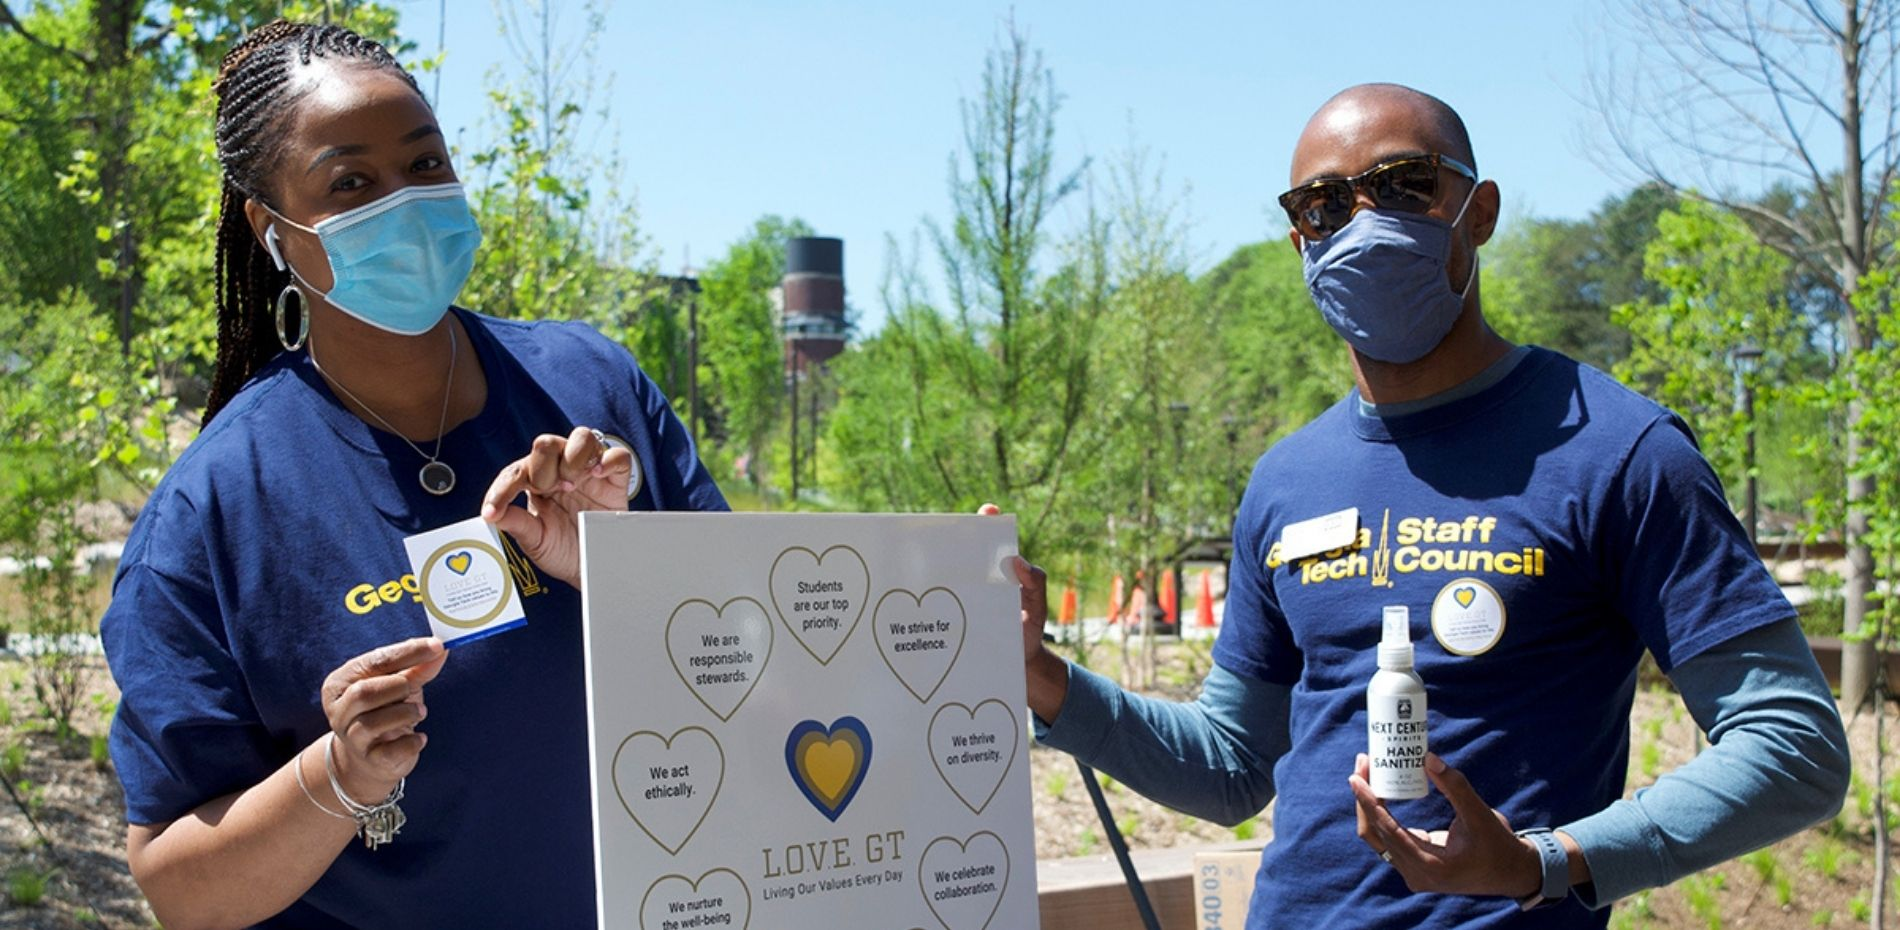 Georgia Tech employees holding up the nine organizational values on a poster board